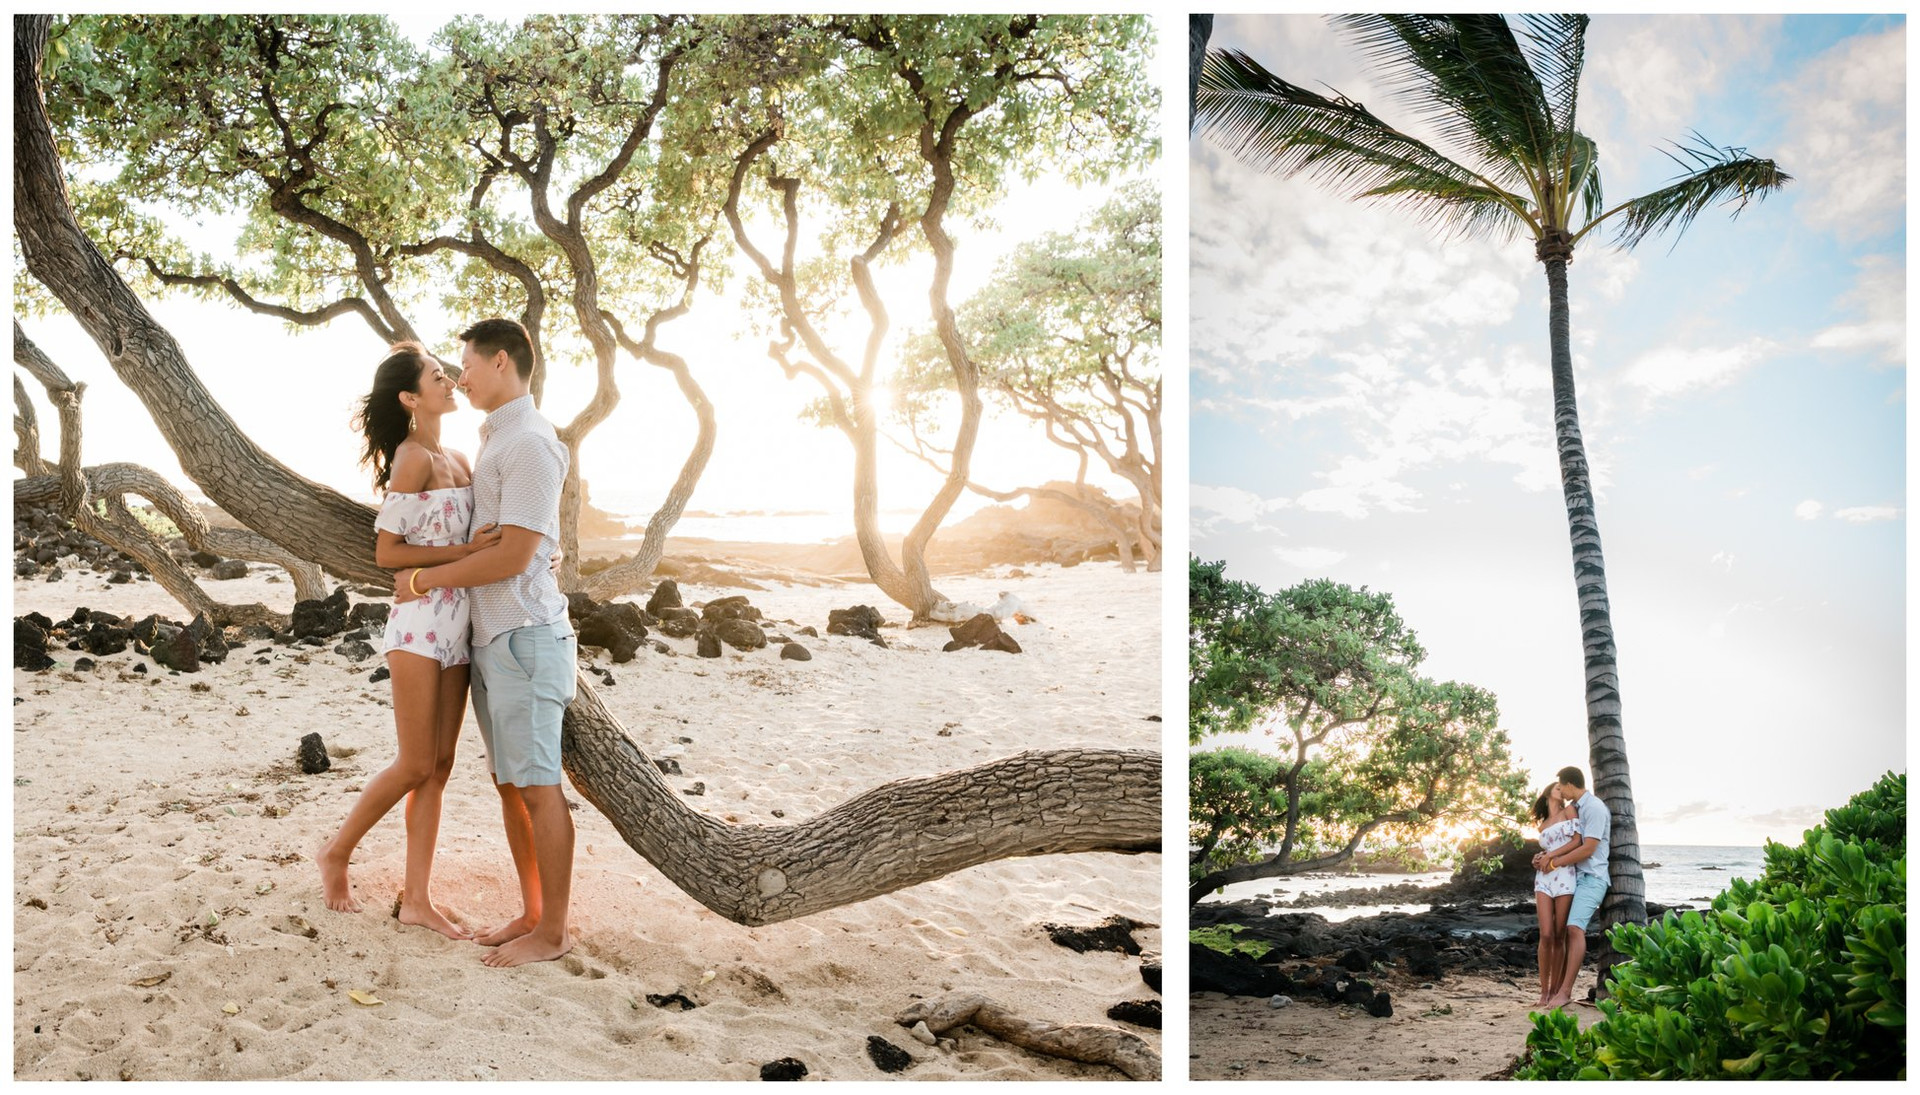 Hawaii Engagement Photography 12.jpg